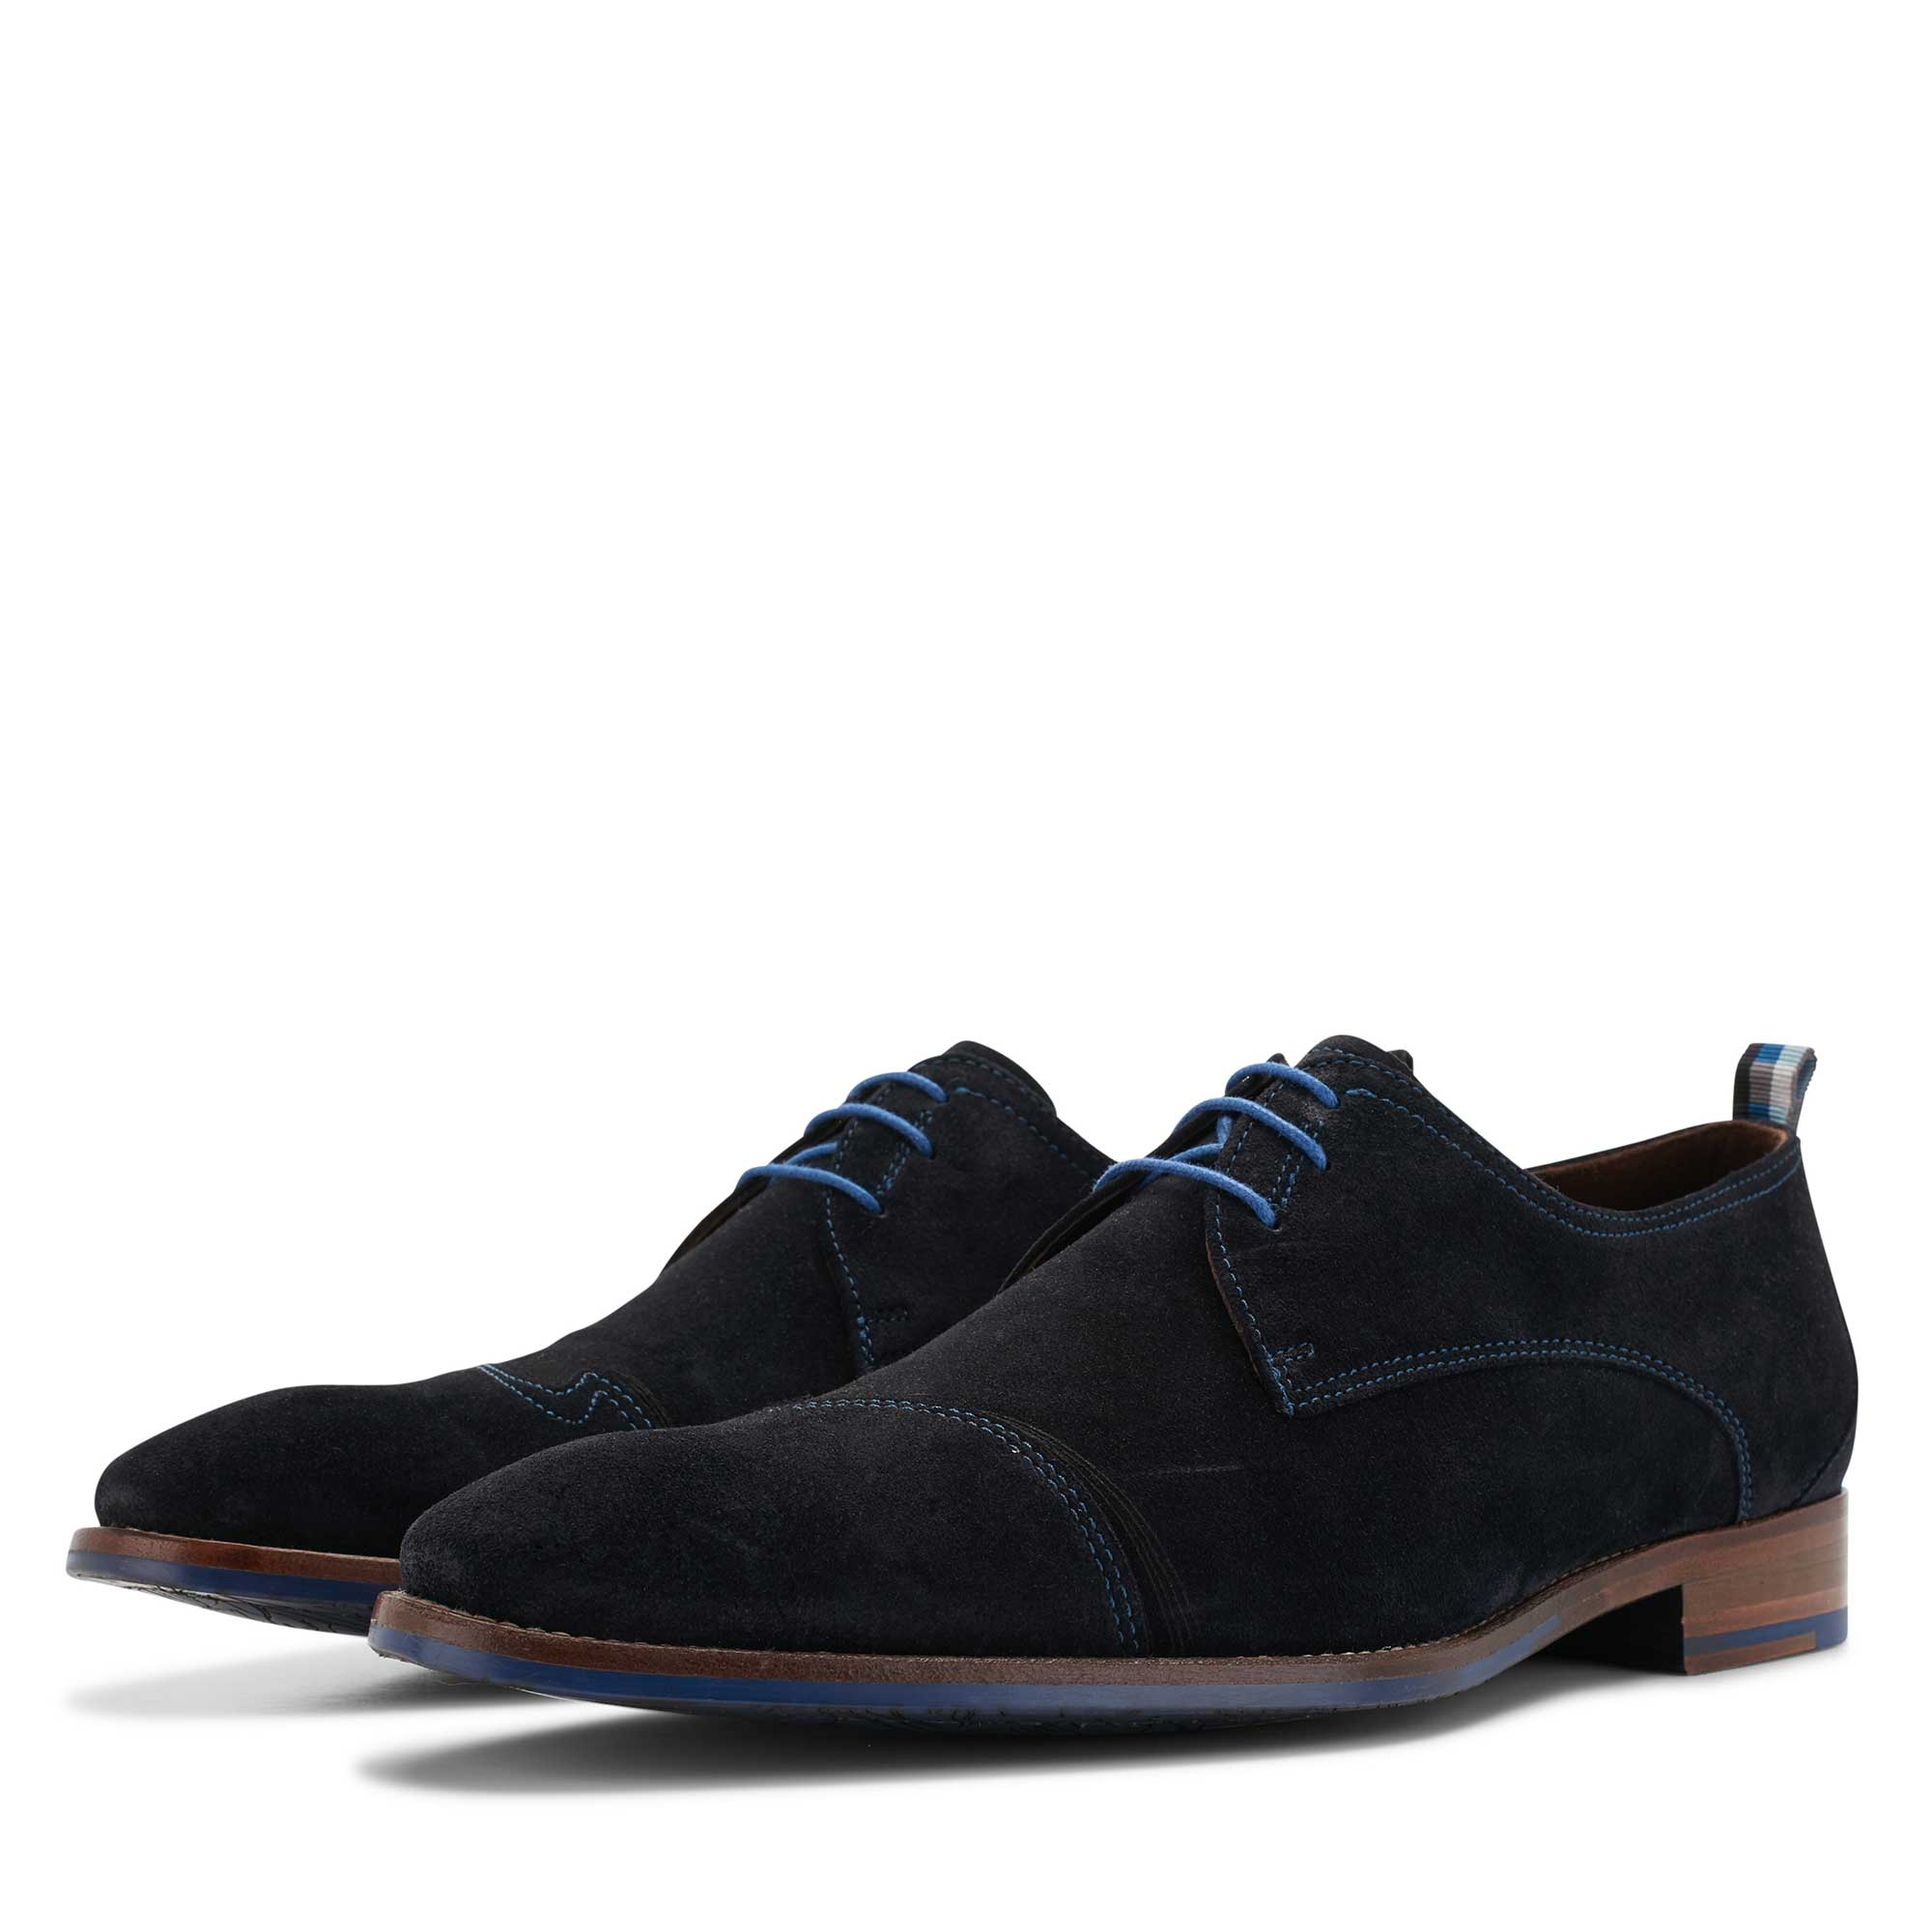 18006/04 - Blue suede lace shoe